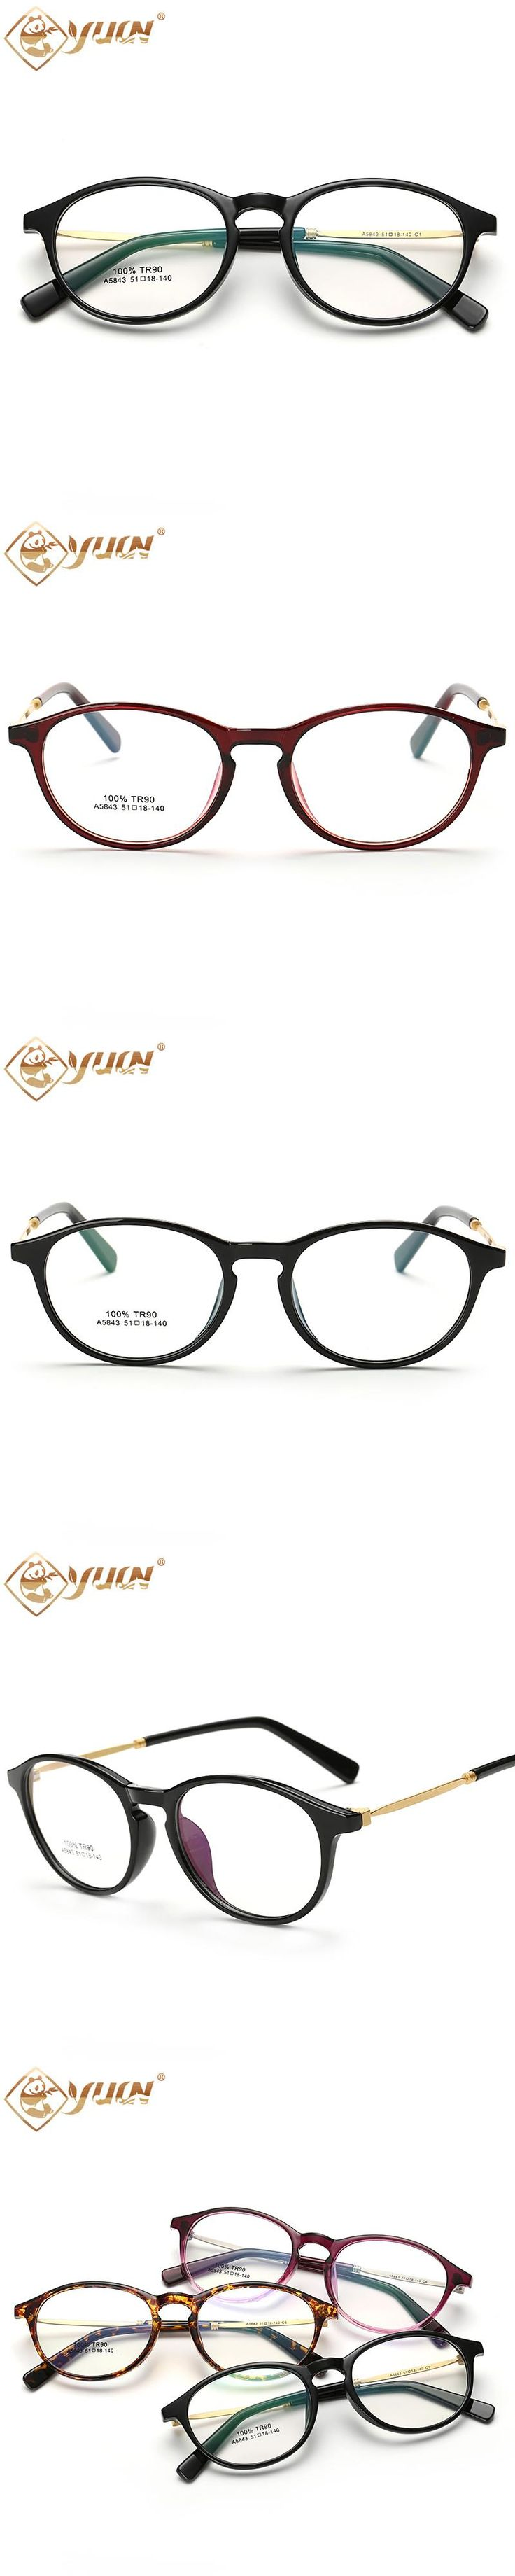 High quality TR90 glasses frame eyewear clear lens eyeglasses optical unisex computer glasses 5843